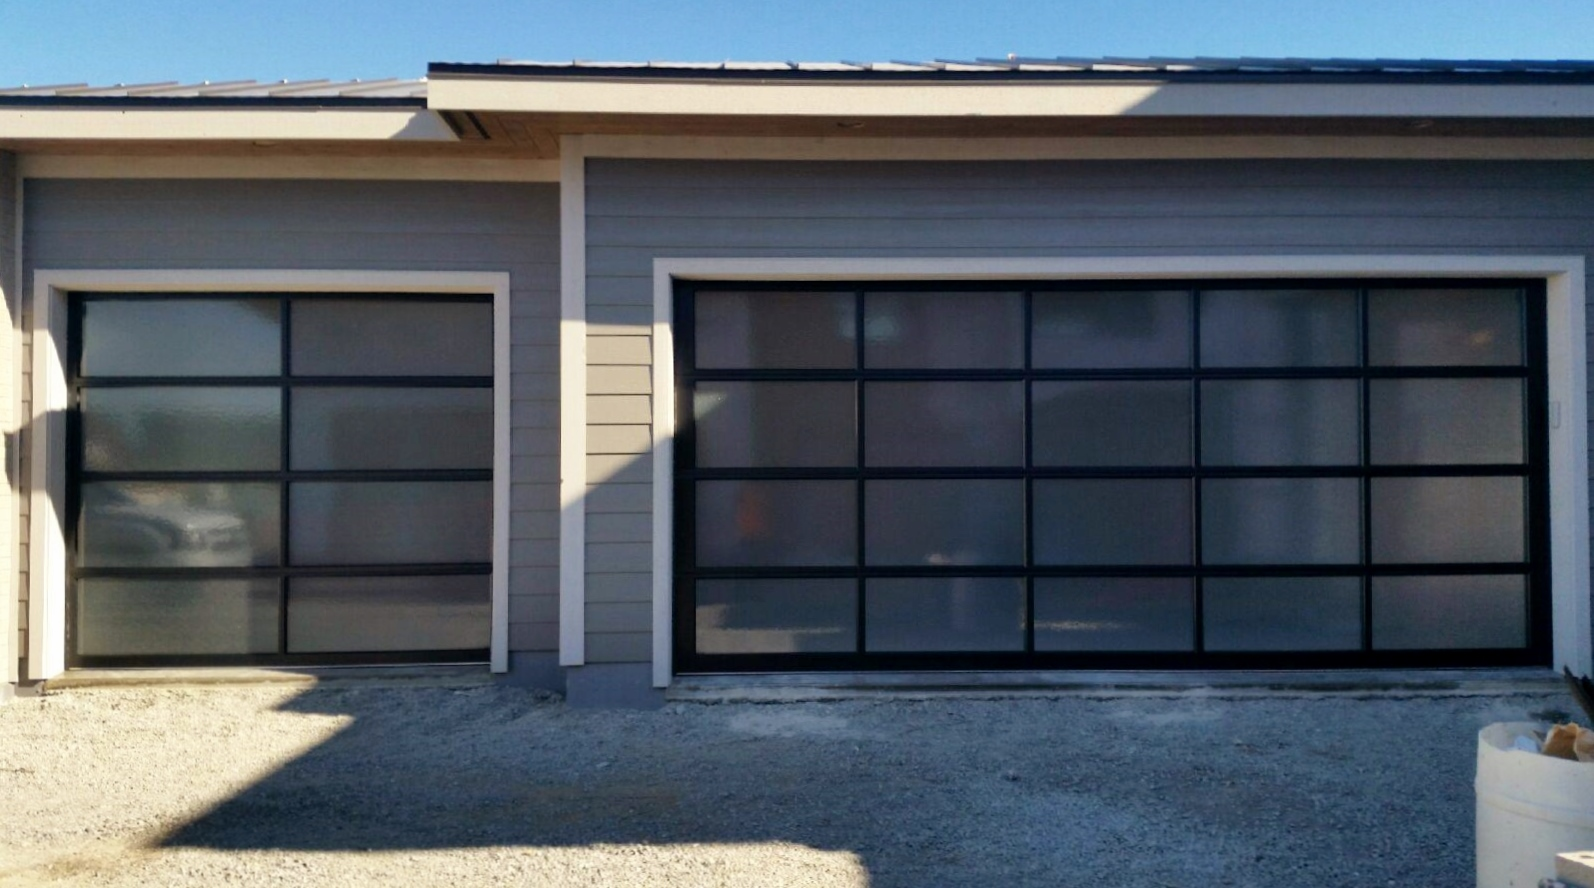 Residential garage door sizes images white marsh accents for 18x8 garage door